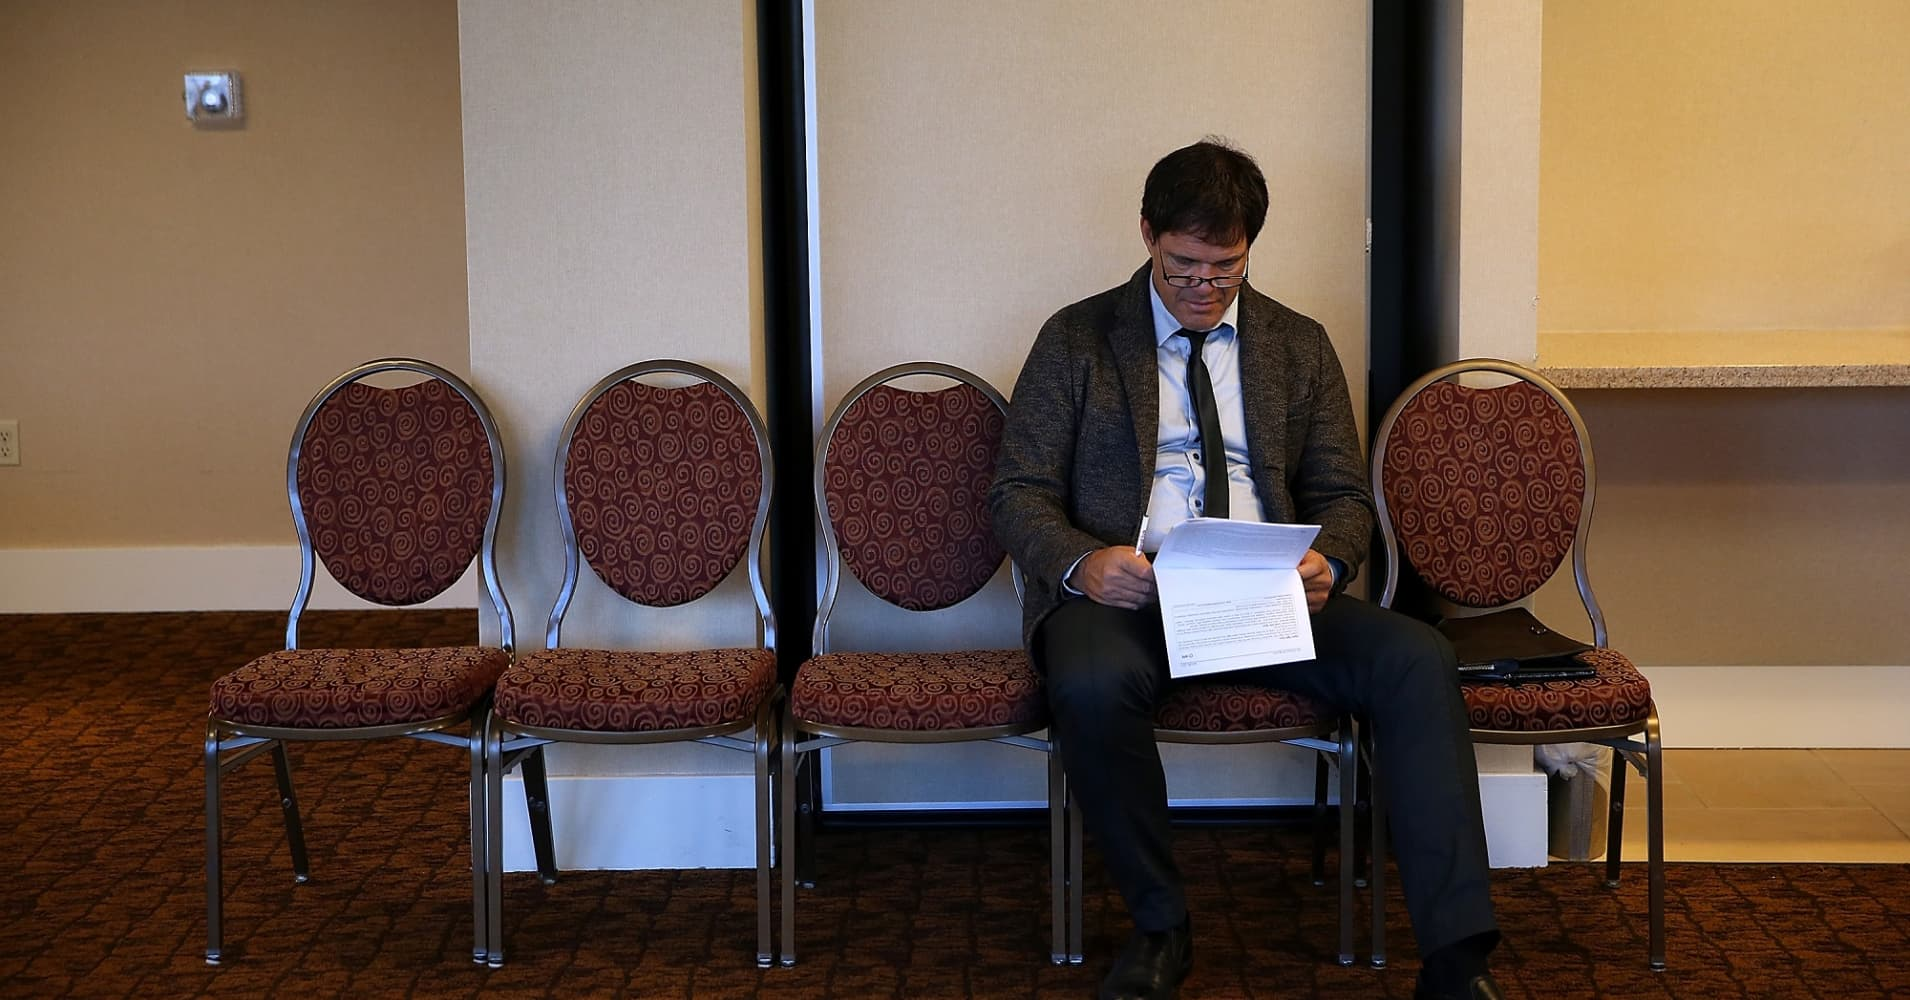 A job seeker fills out an application during the start of the HireLive career fair.